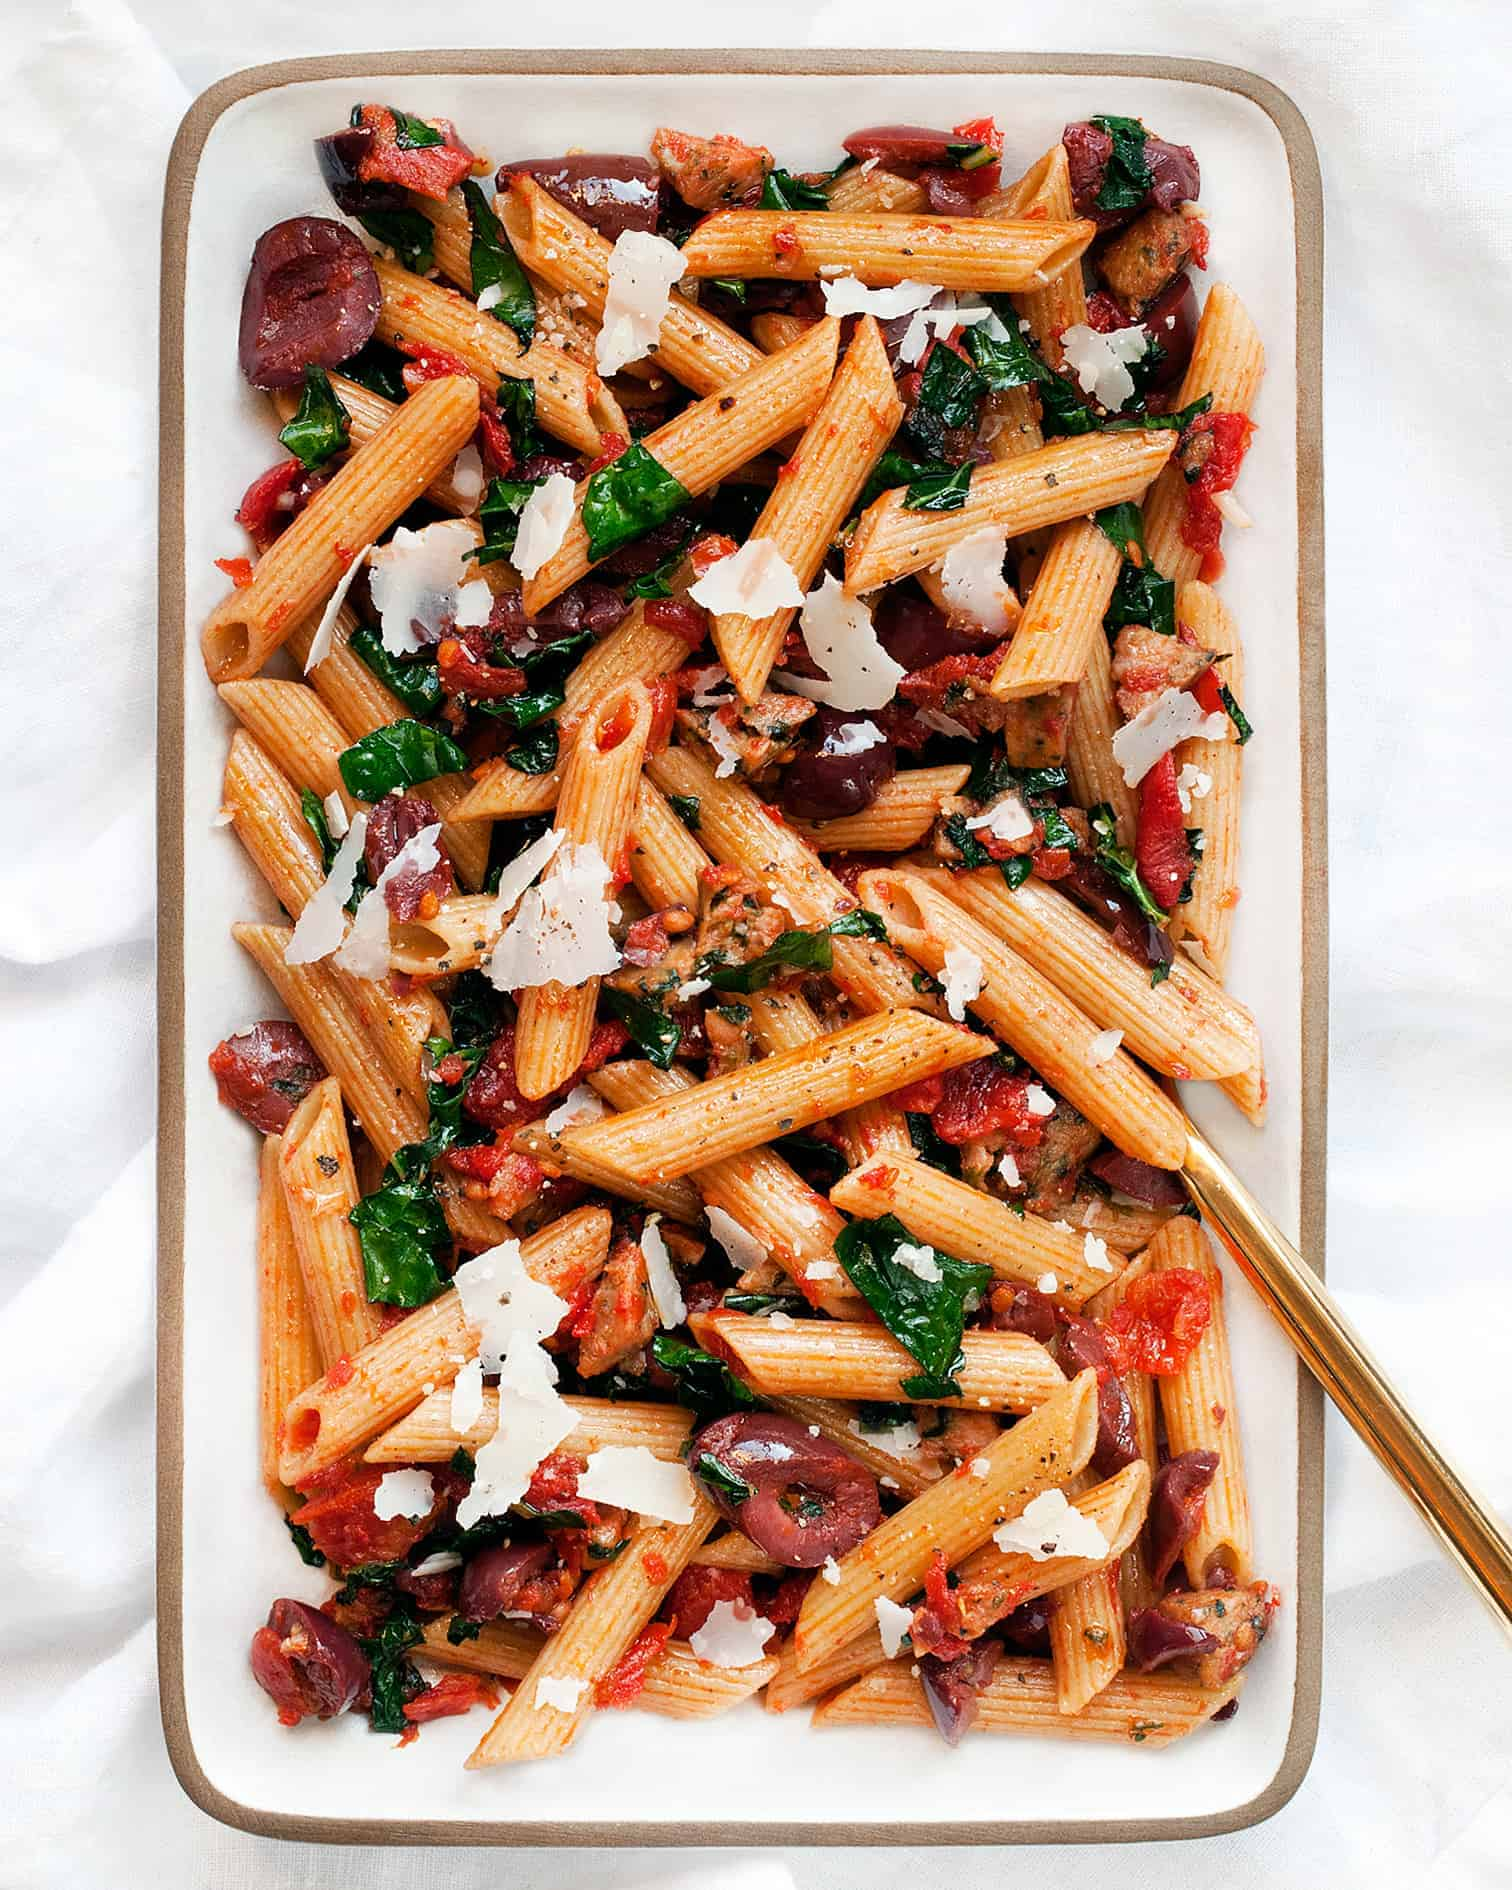 Whole Wheat Penne with Sausage, Kale & Tomatoes